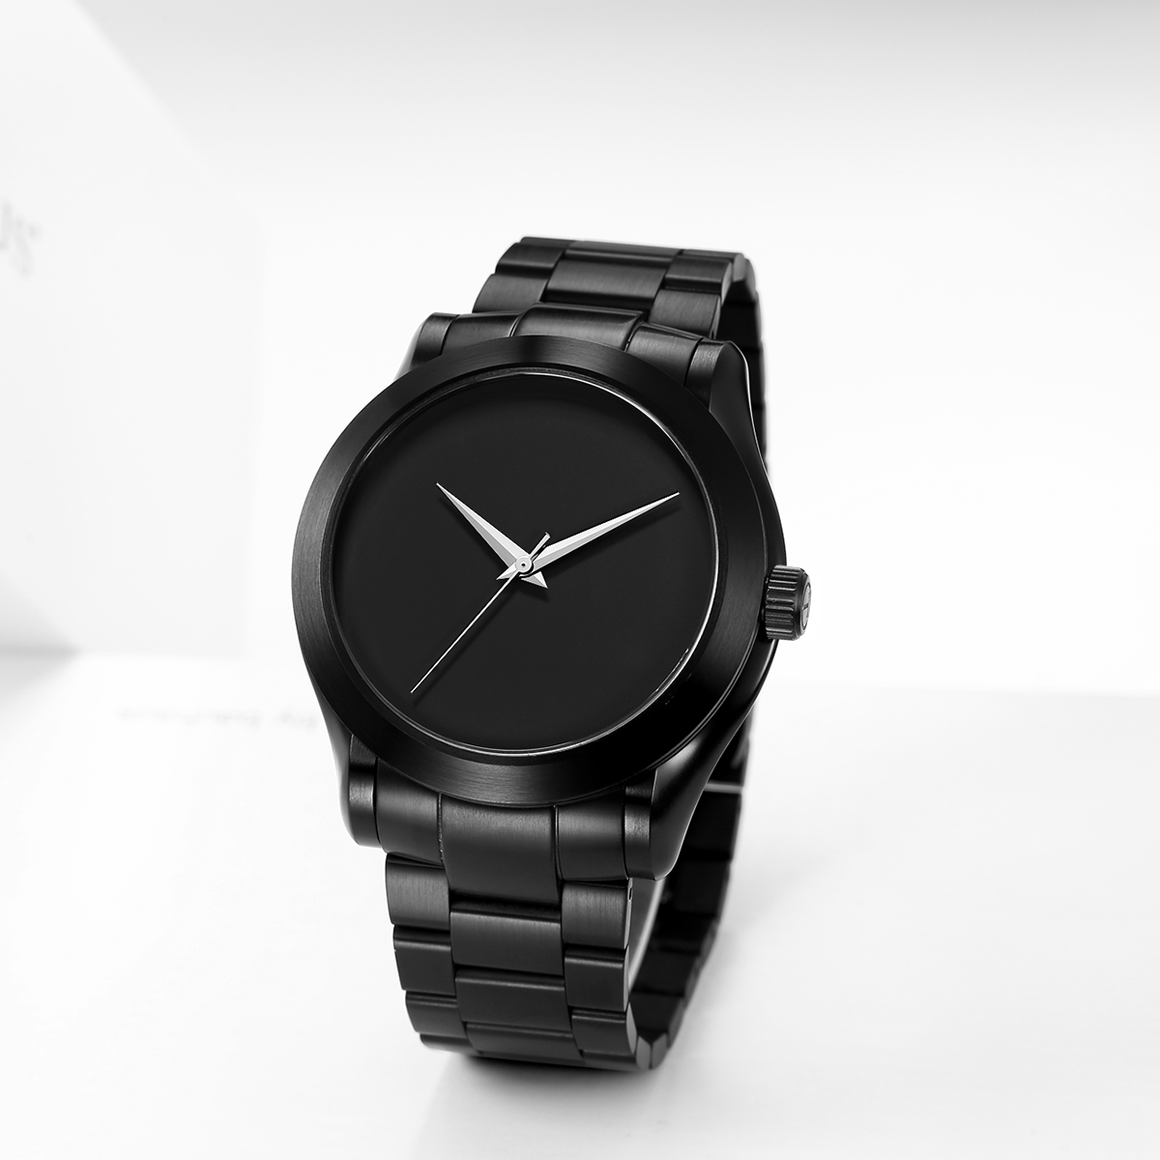 The Hyperion - Black Case |  Black Dial | Black Stainless Steel Band